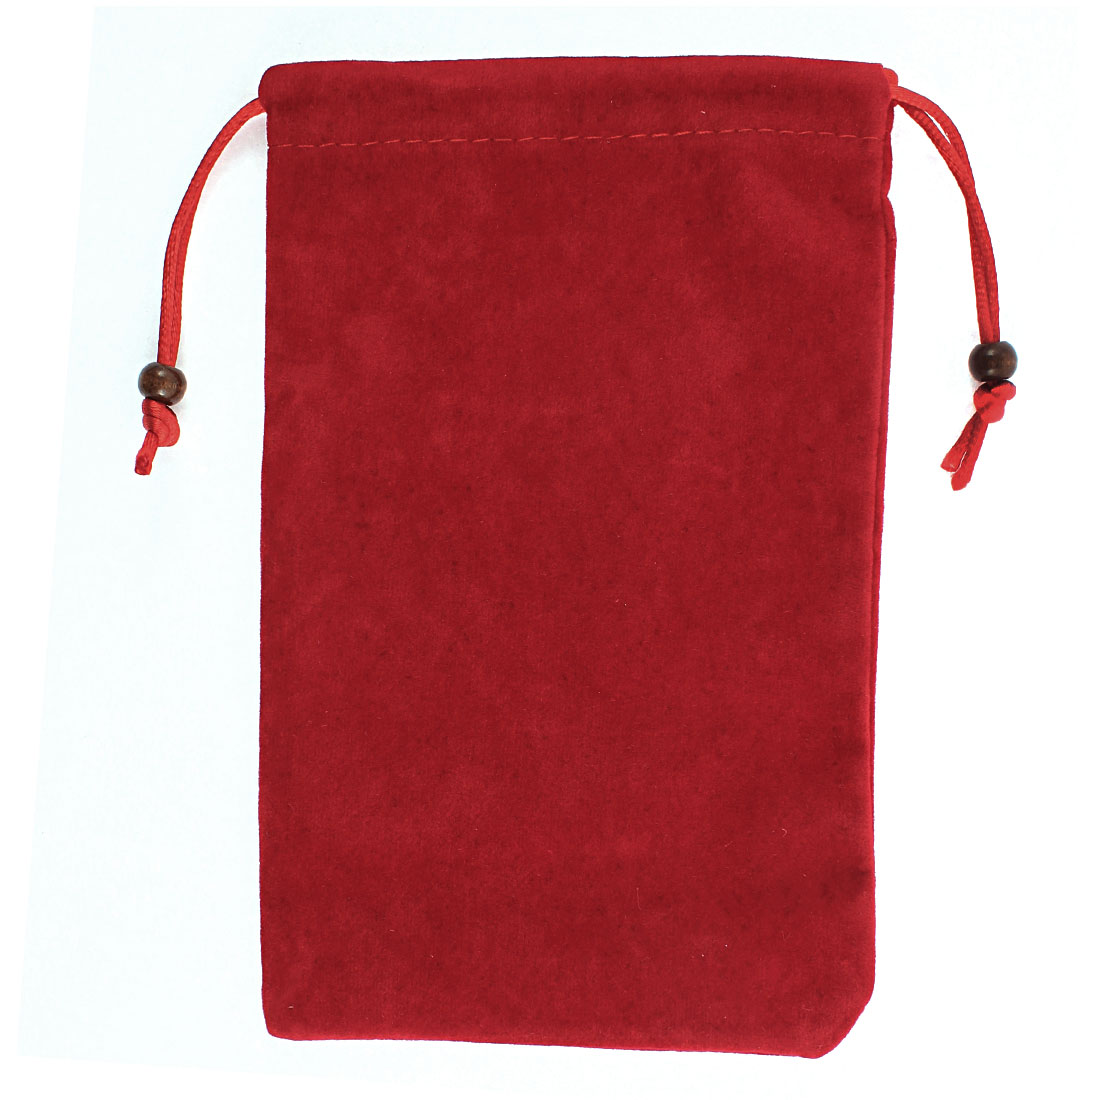 Velvet Drawstring Closure Cell Phone Pouch Sleeve Bag Dark Red 7 Inch Length